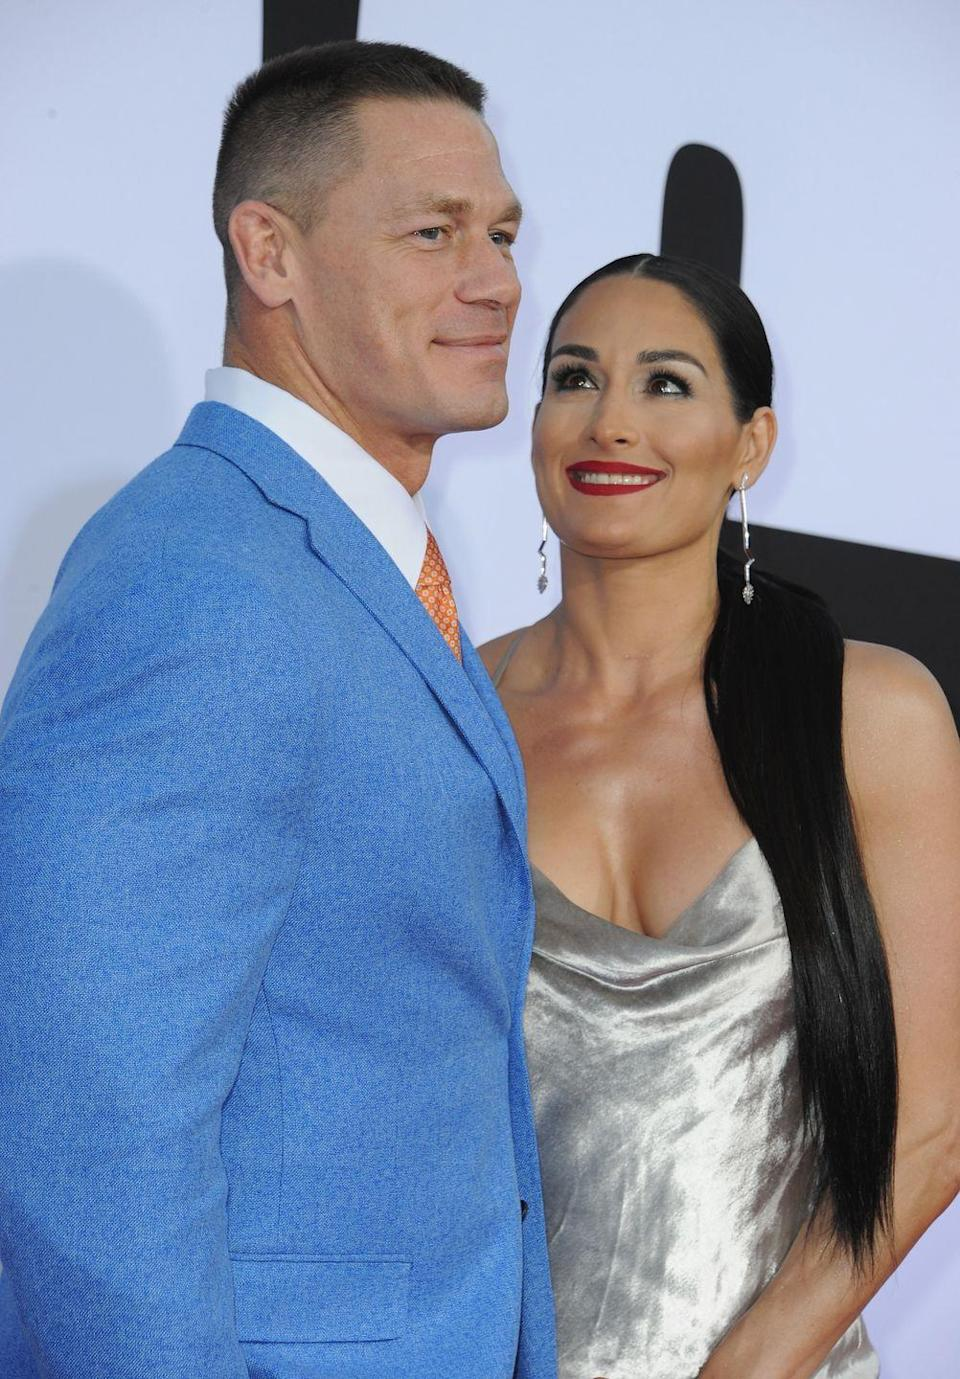 """<p>The fellow professional wrestlers got engaged on live TV in April 2017, after six years together. But they announced their breakup in the weeks before their wedding in 2018, according to <em><a href=""""https://www.usmagazine.com/celebrity-news/news/nikki-bella-and-john-cena-break-up-end-engagement/"""" rel=""""nofollow noopener"""" target=""""_blank"""" data-ylk=""""slk:Us Weekly"""" class=""""link rapid-noclick-resp"""">Us Weekly</a></em><a href=""""https://www.usmagazine.com/celebrity-news/news/nikki-bella-and-john-cena-break-up-end-engagement/"""" rel=""""nofollow noopener"""" target=""""_blank"""" data-ylk=""""slk:."""" class=""""link rapid-noclick-resp"""">.</a></p>"""